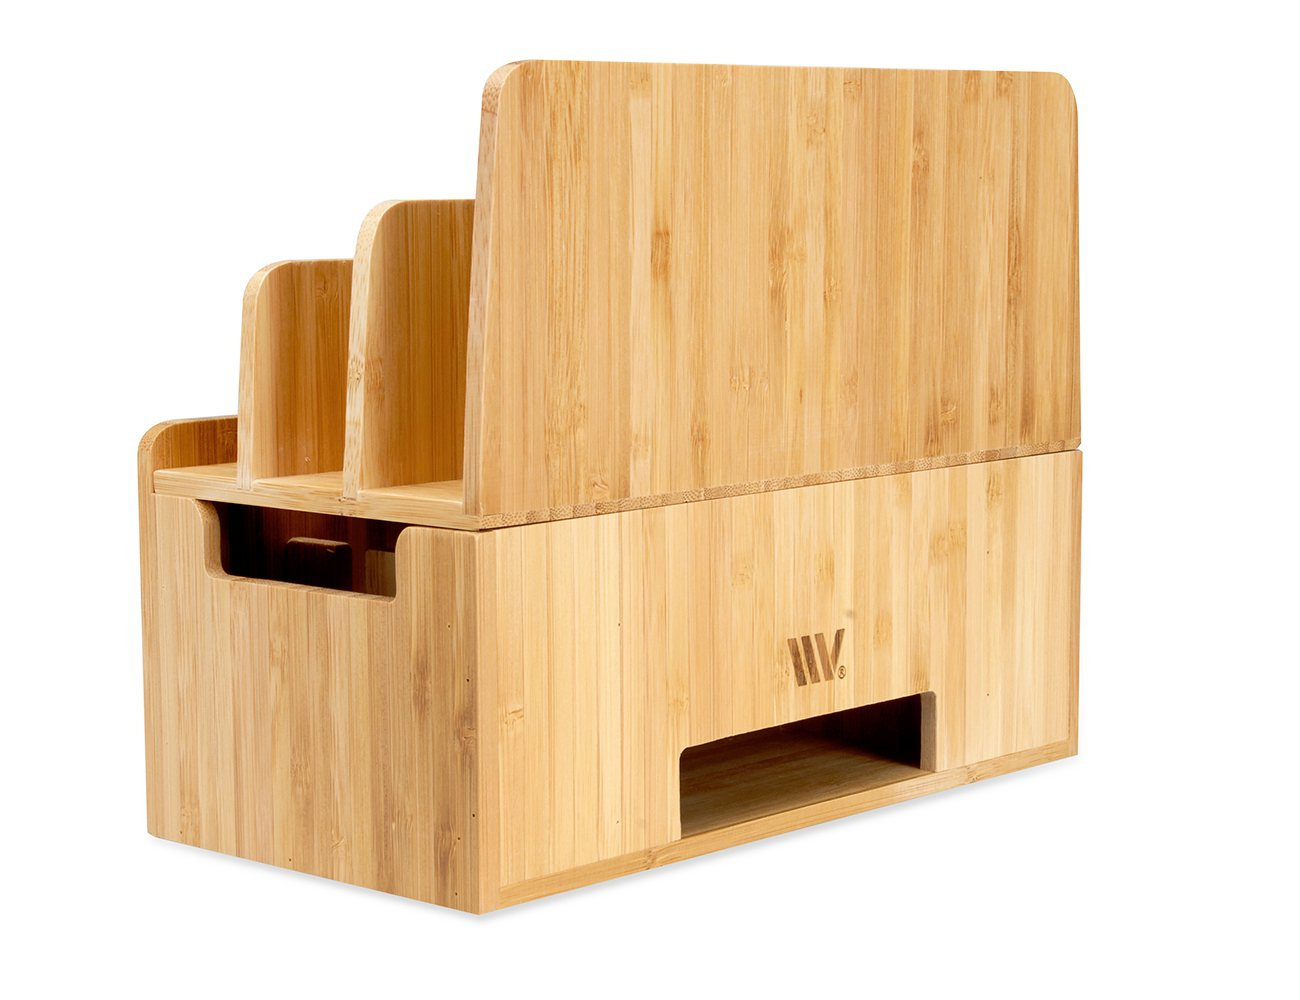 MobileVision Bamboo Charging Stand and Organizer Dock